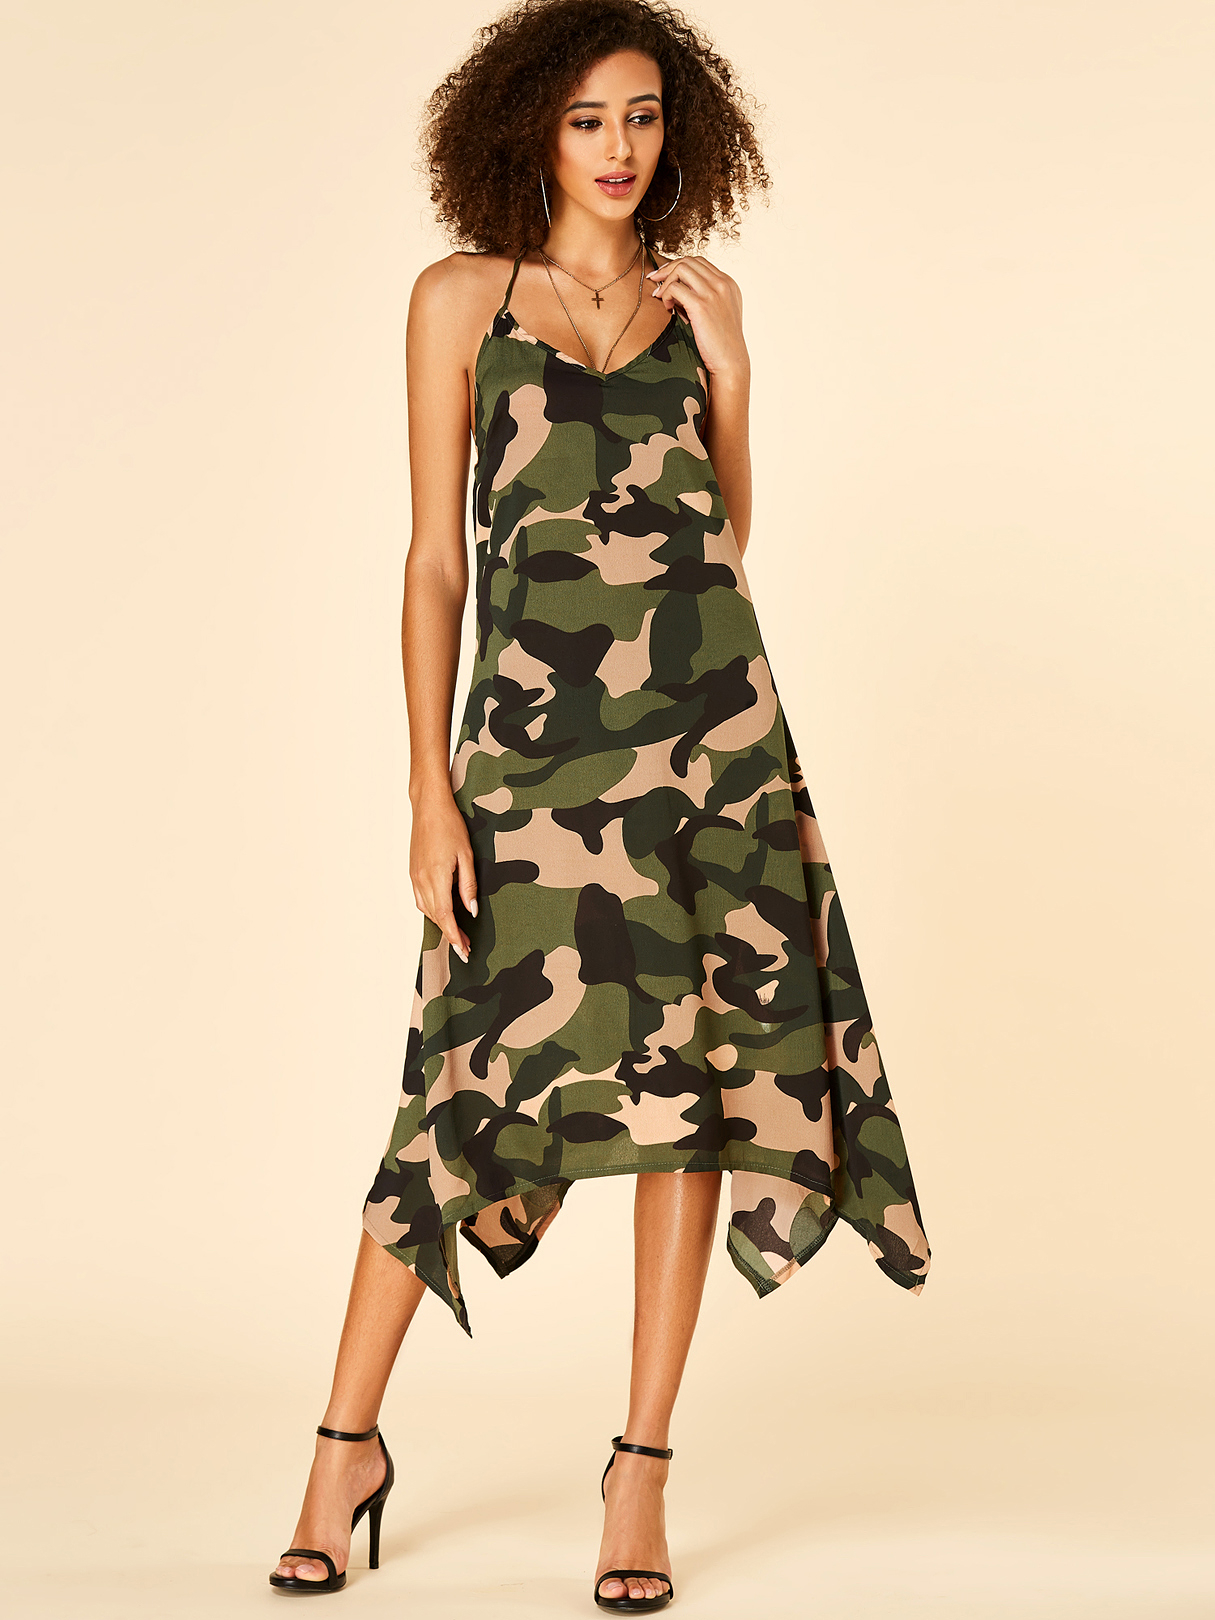 Camo Backless Design Halter Sleeveless Dress